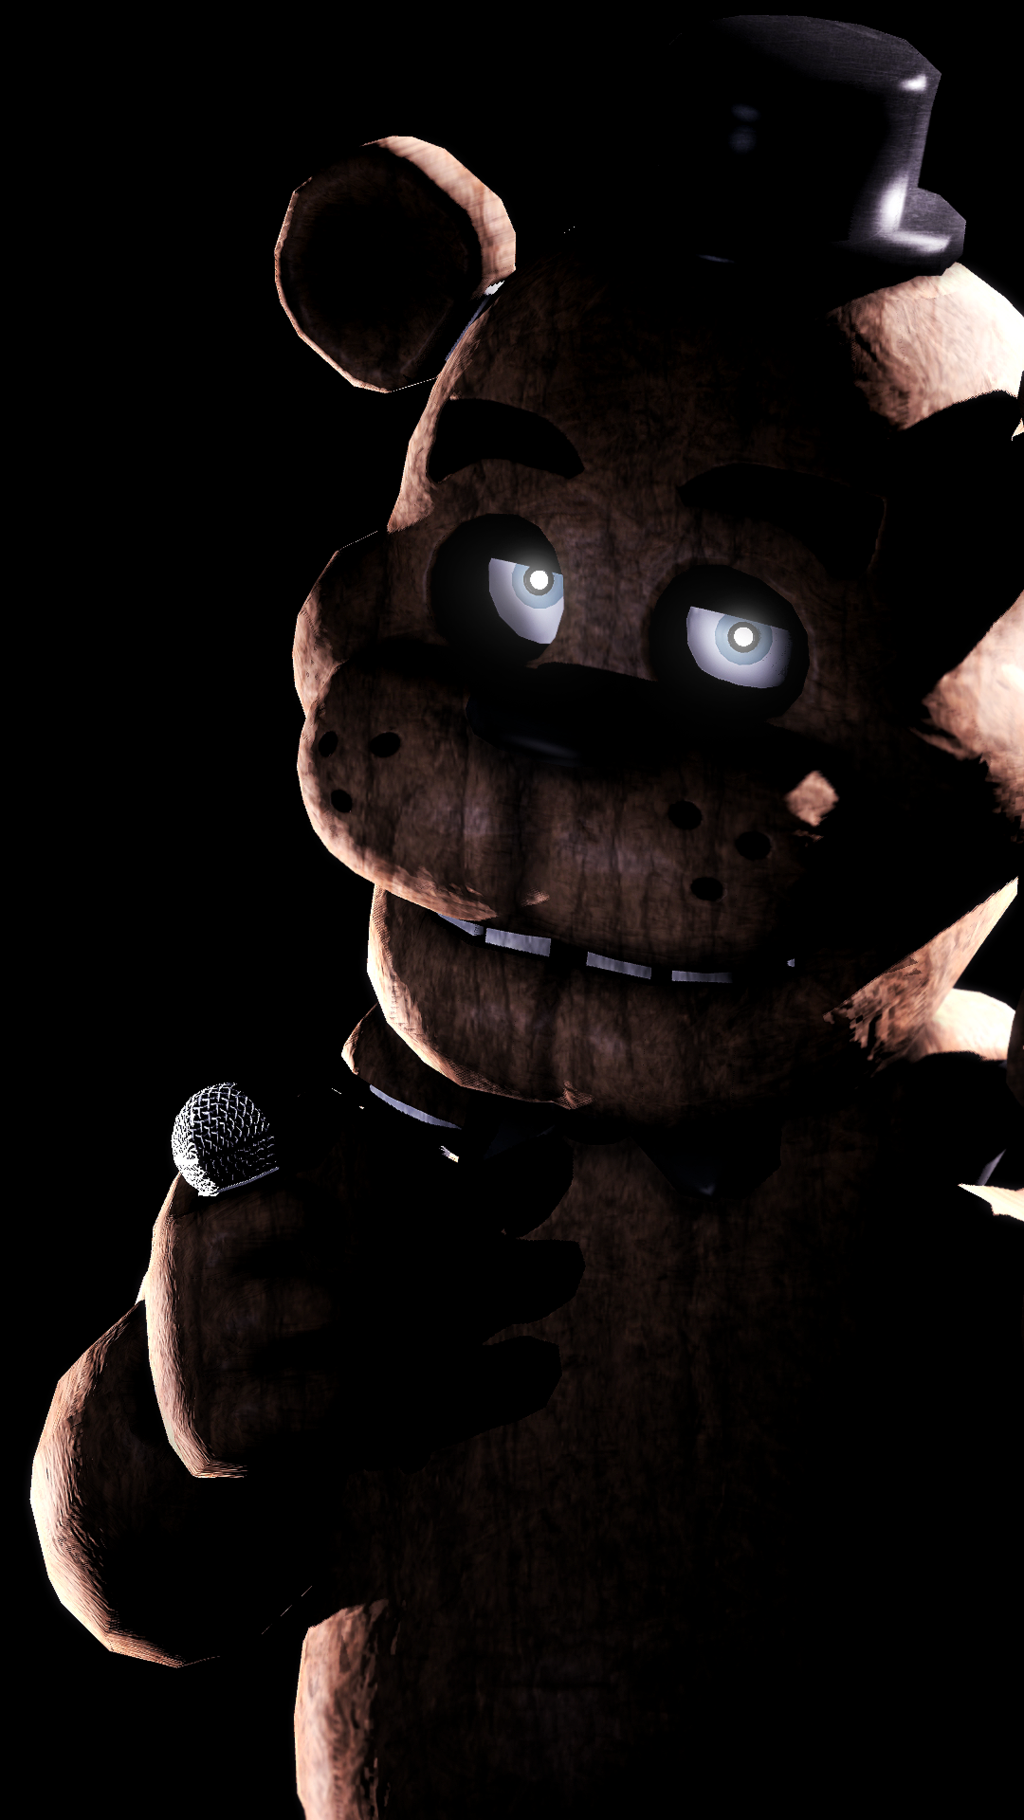 Download Five Nights At Freddy S Iphone Wallpaper Hd Backgrounds